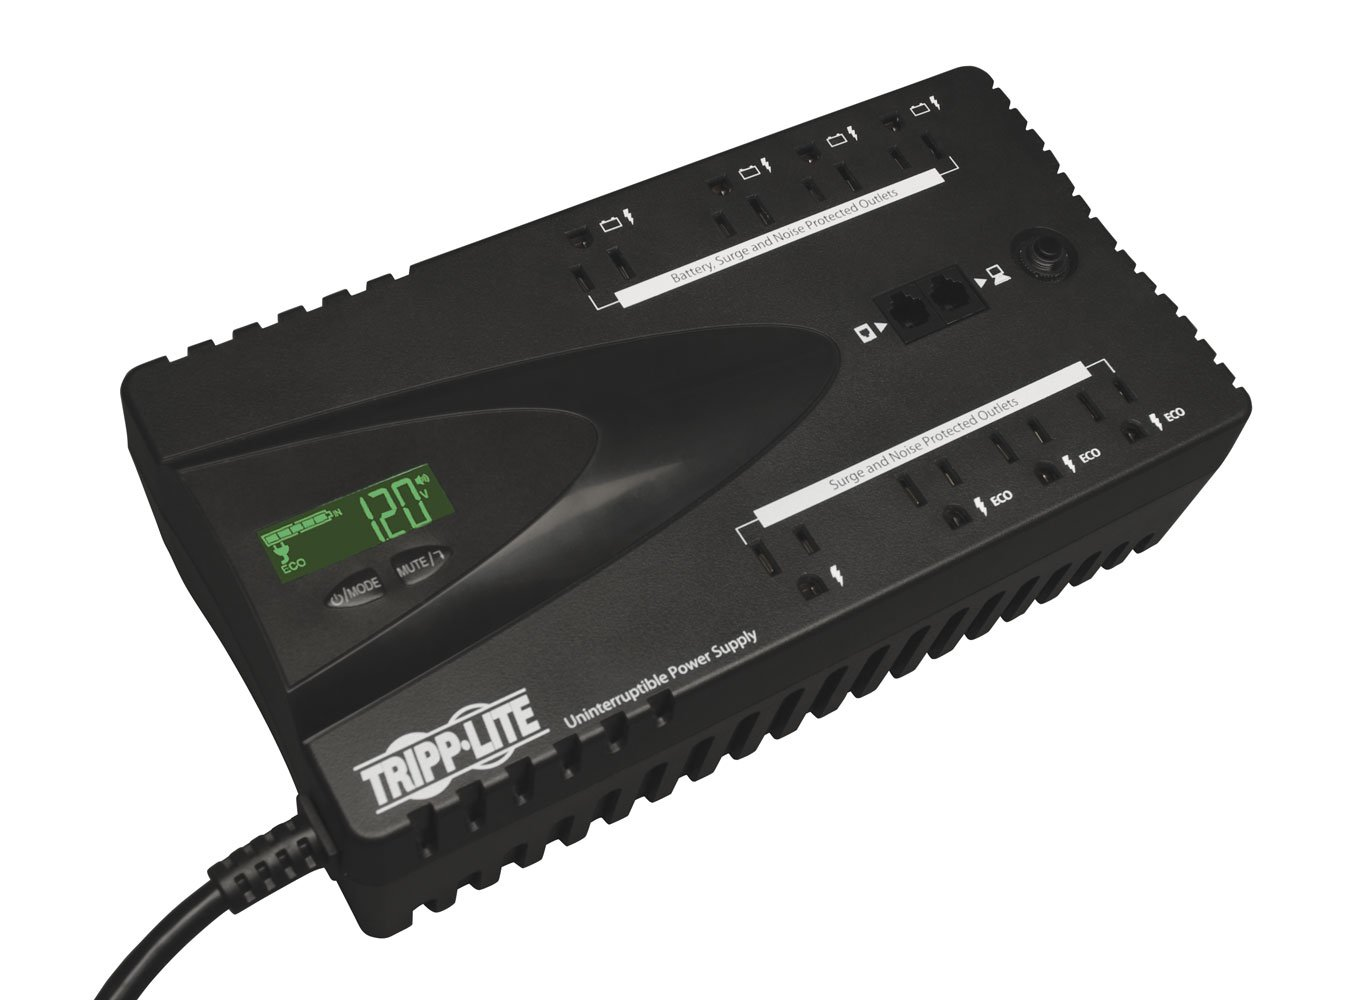 Tripp Lite 650VA UPS Battery Backup, LCD, 325W Eco Green, USB, RJ11, 8 Outlets (ECO650LCD)